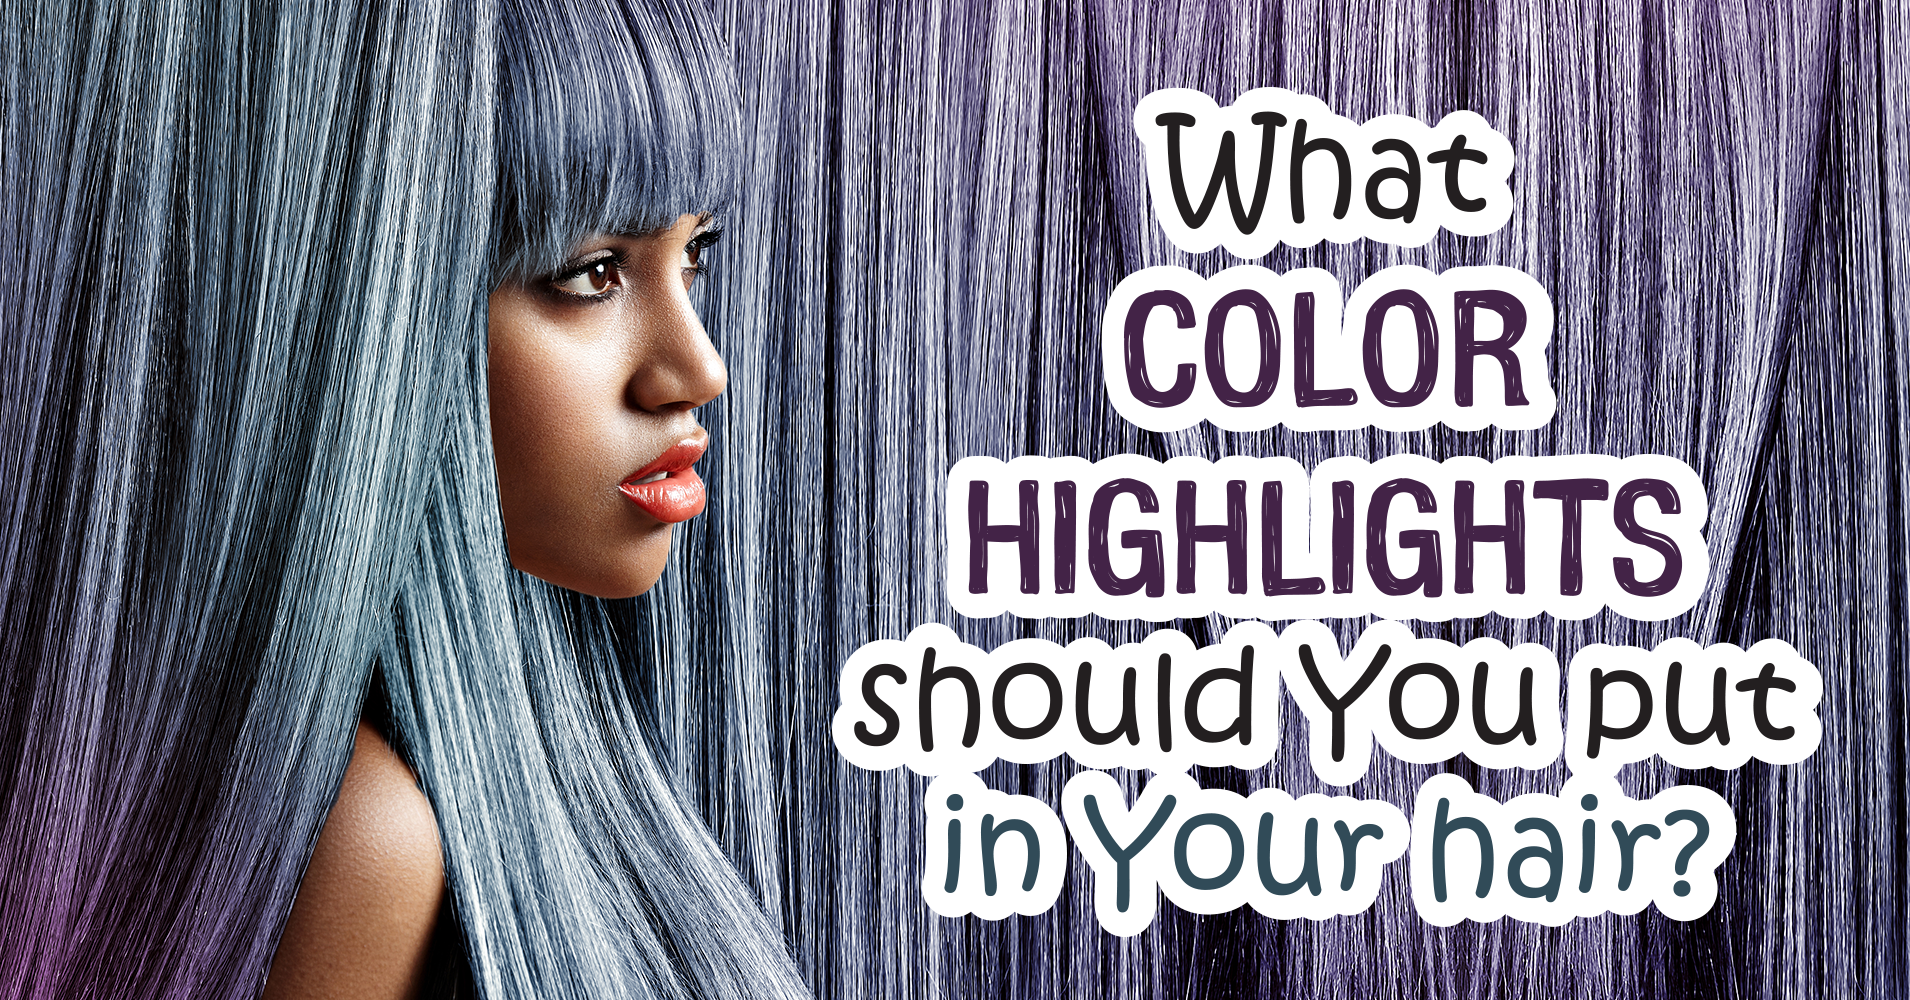 What Color Highlights Should You Put In Your Hair? Quiz